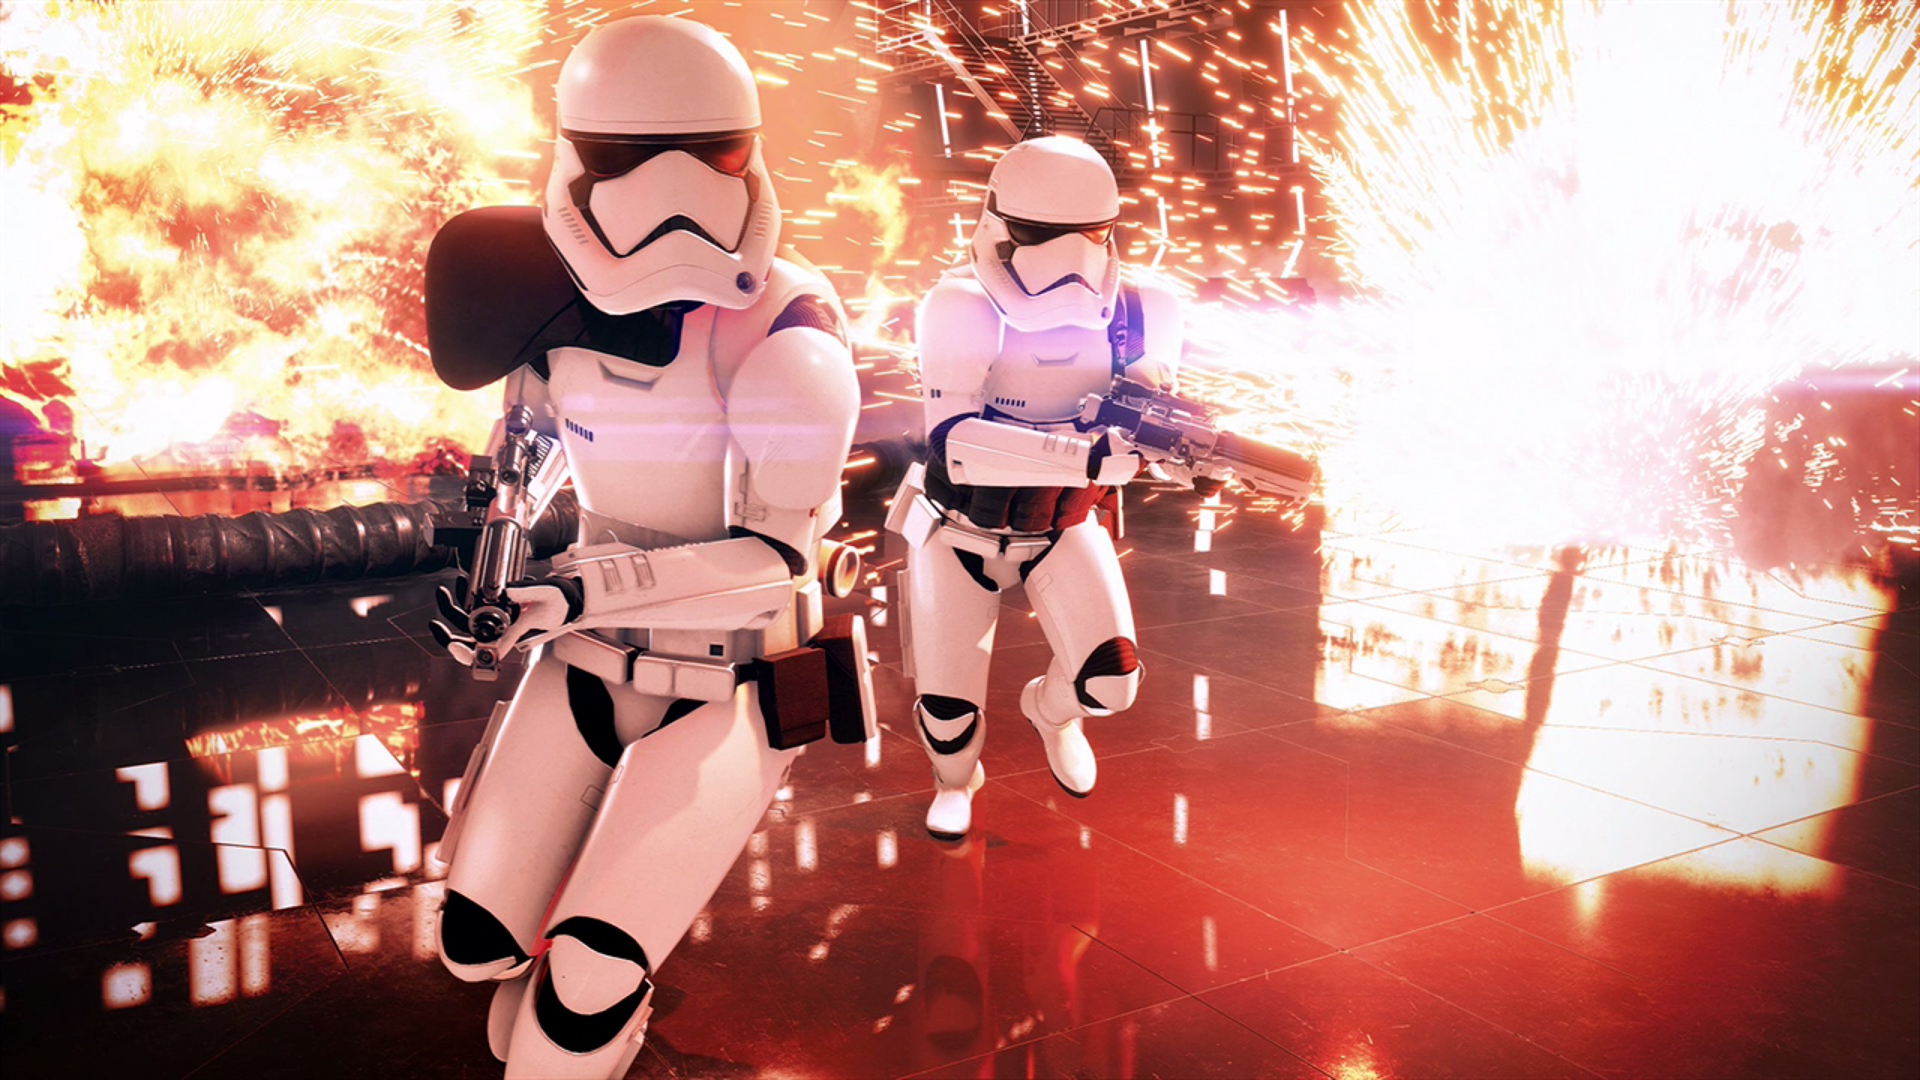 Star Wars Battlefront 2 release date, trailers and news